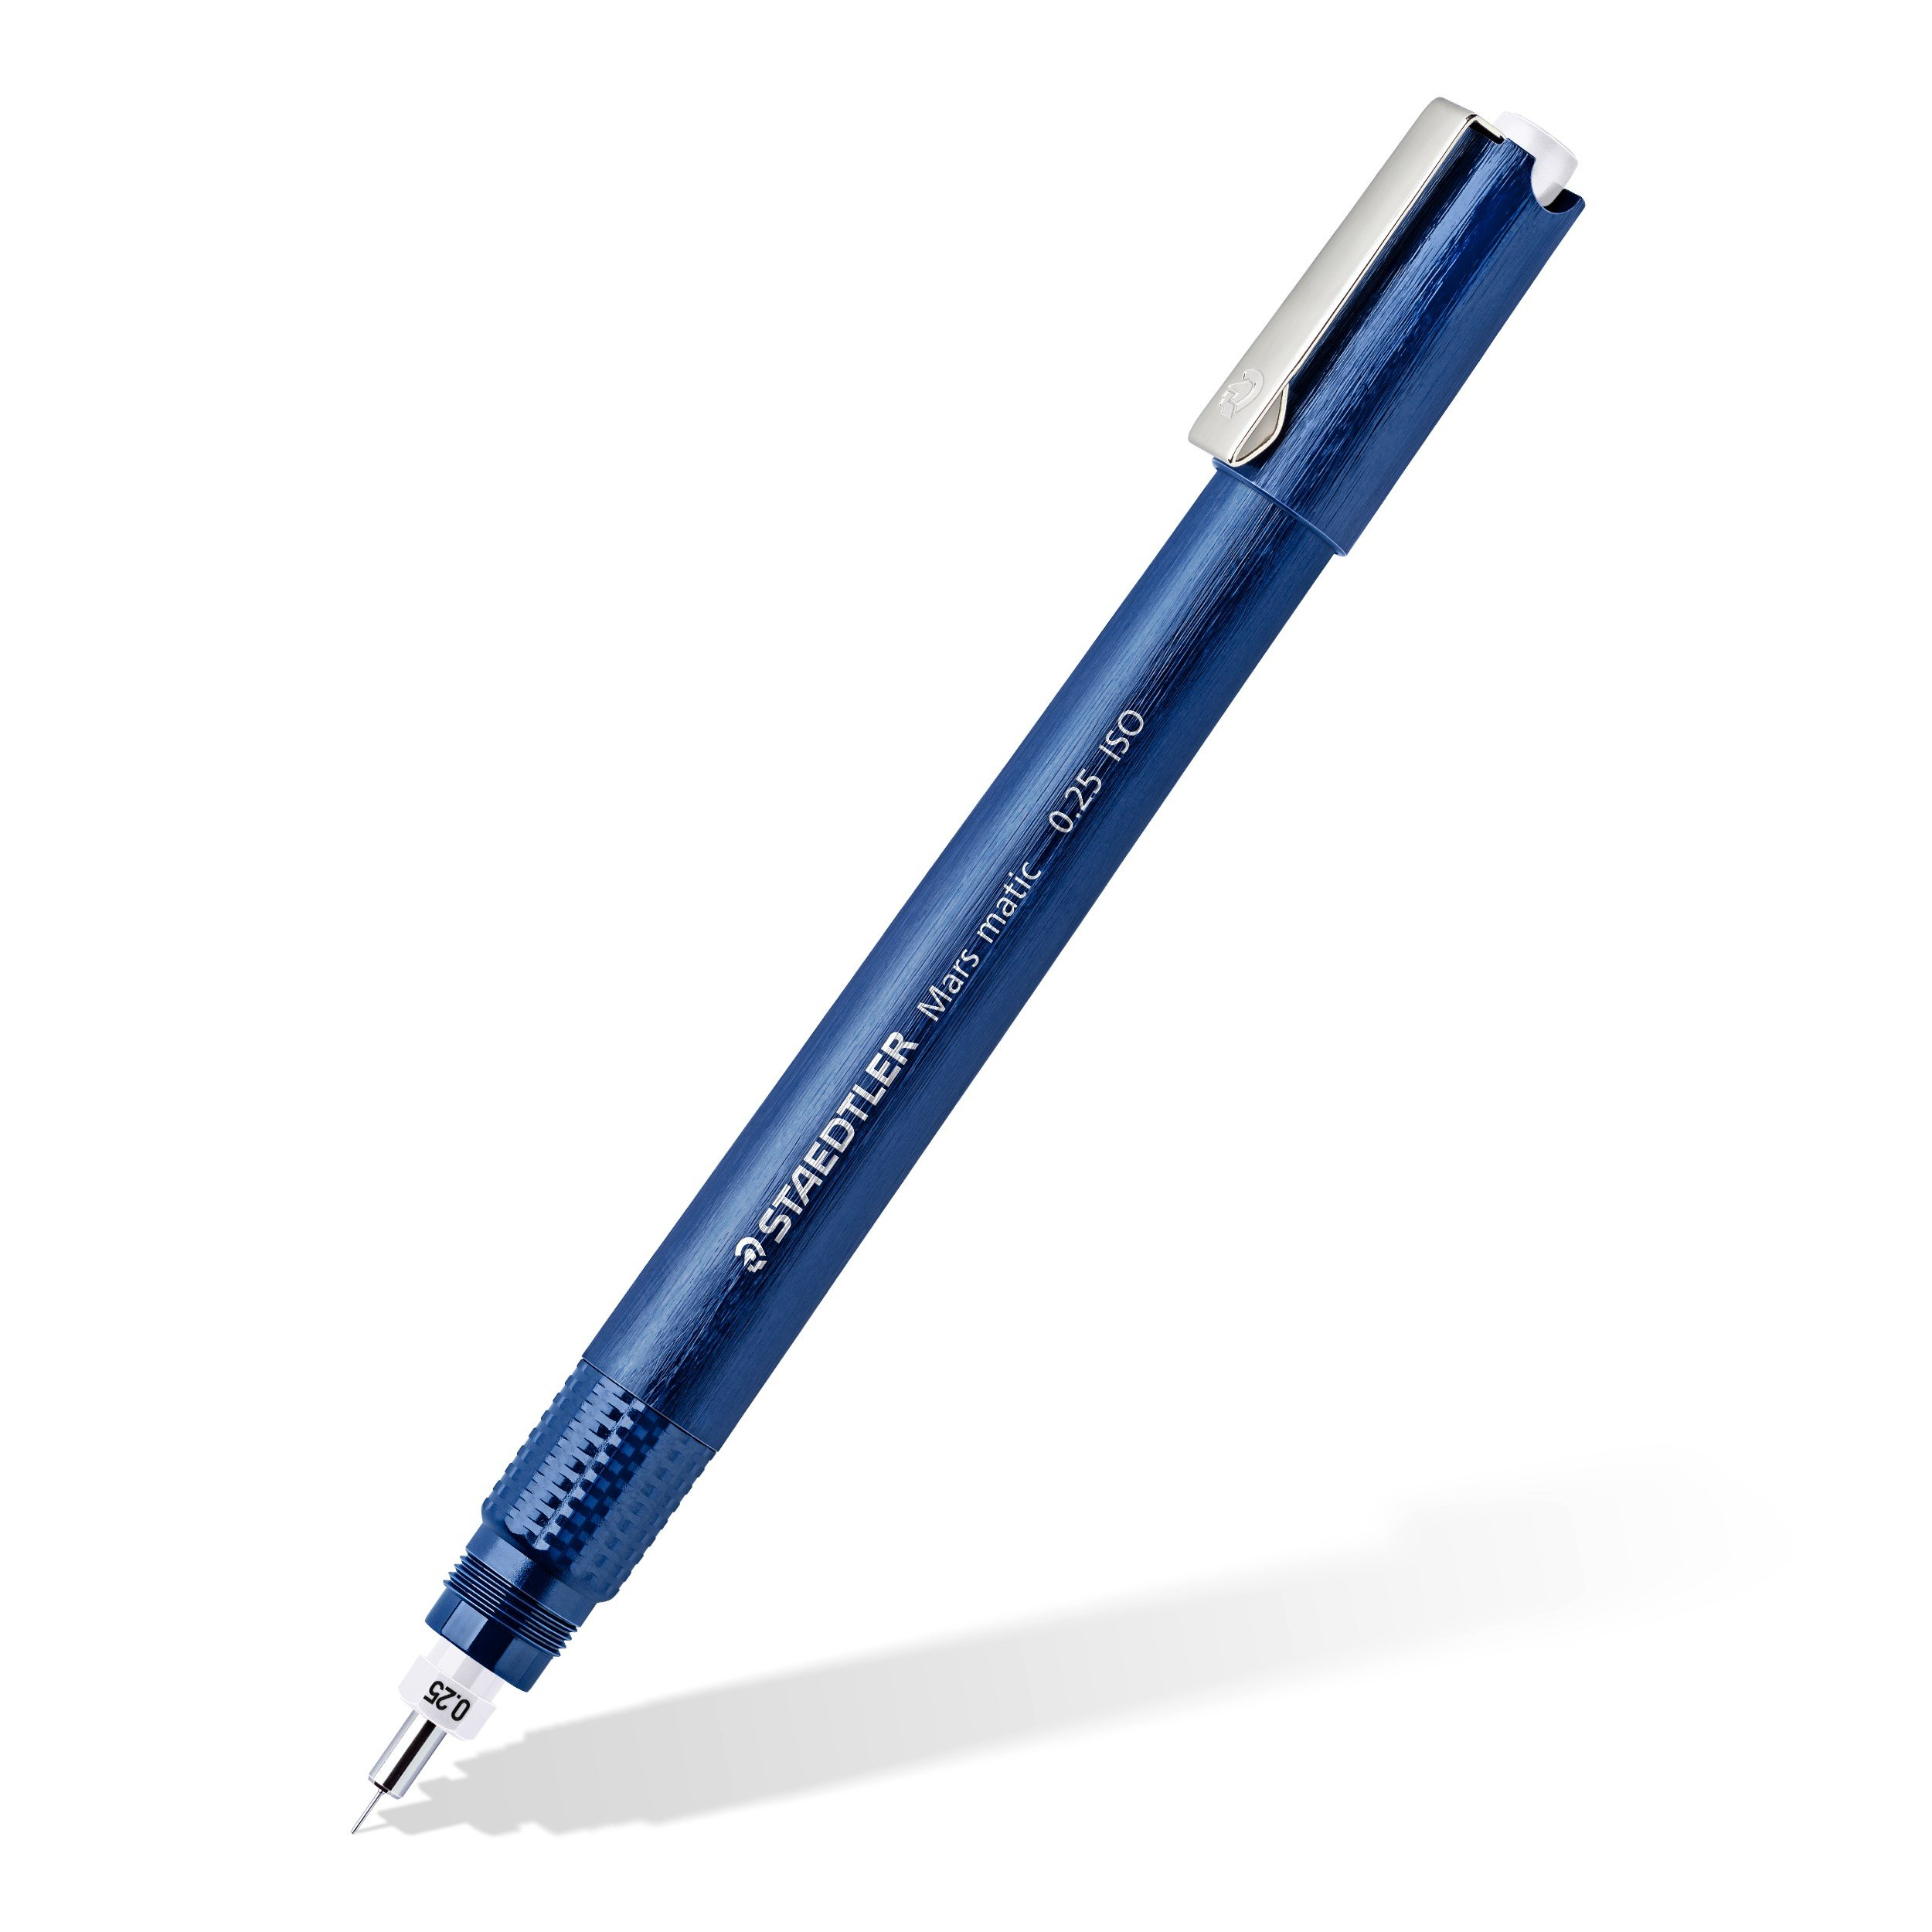 Staedtler Mars Matic 700 M025 Technical Pen - 0.25 mm by Staedtler (Image #1)